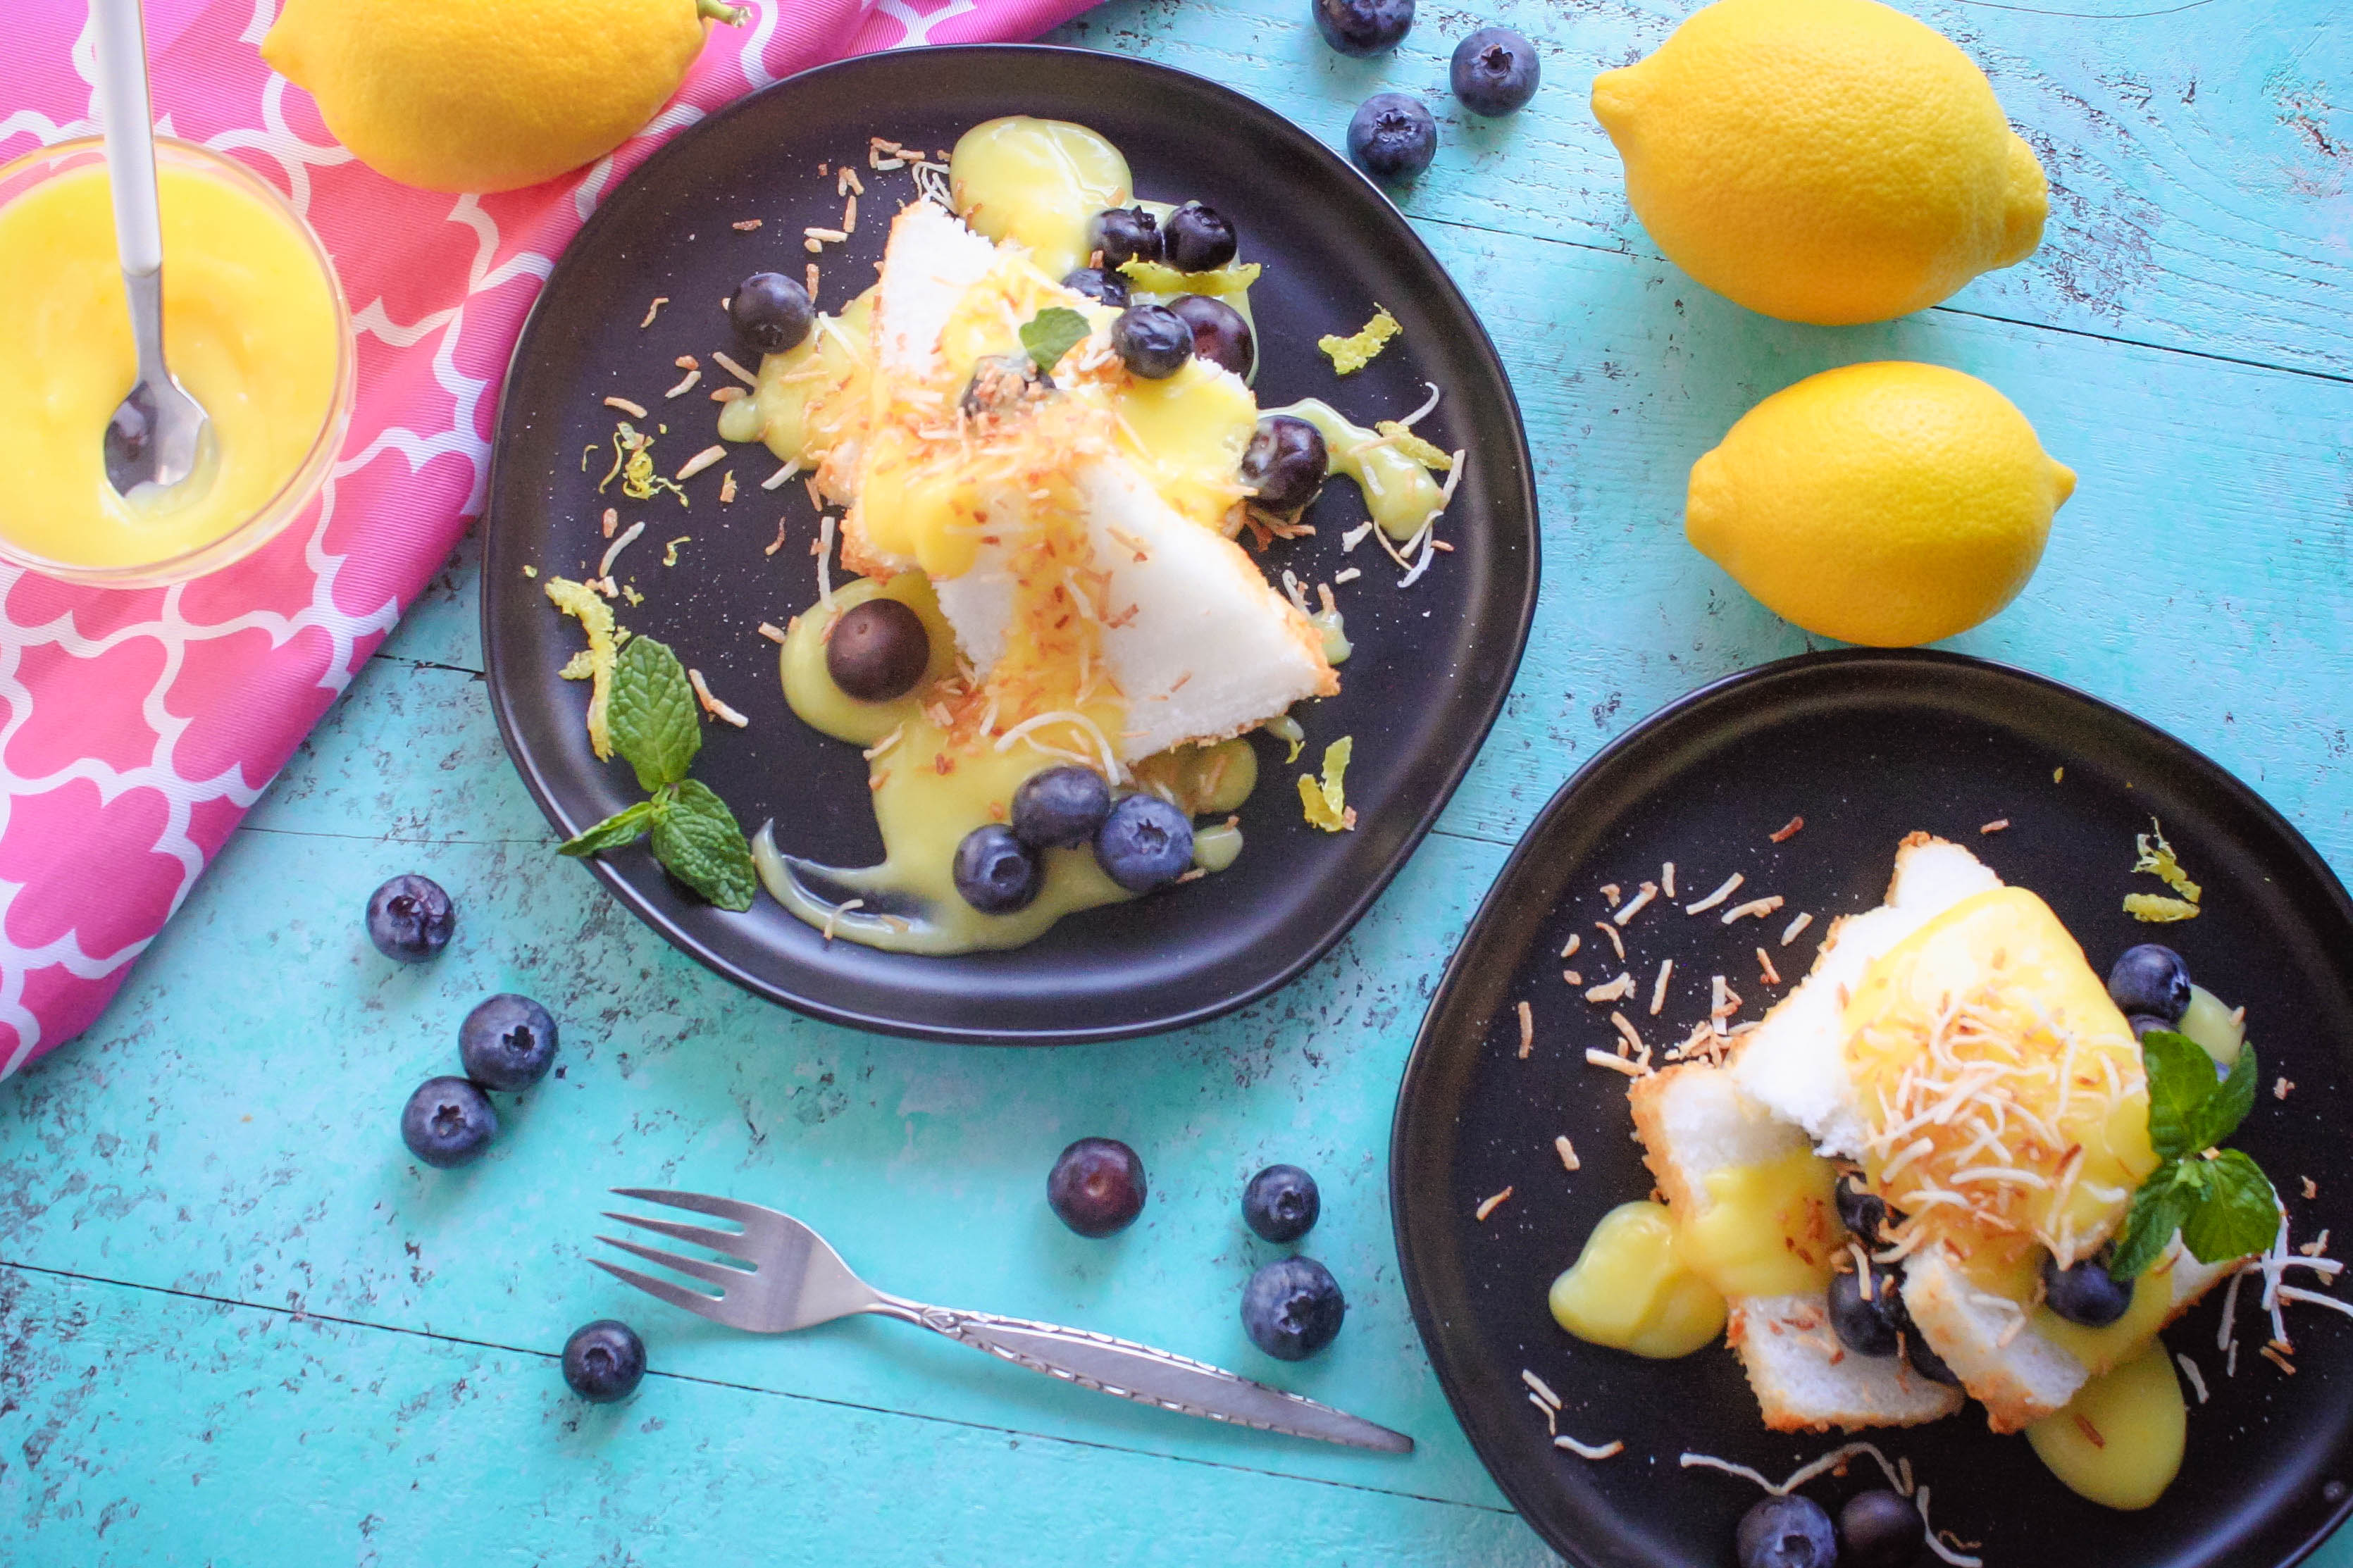 Lemon Curd Layered with Angel Food Cake and Blueberries makes a lovely treat.